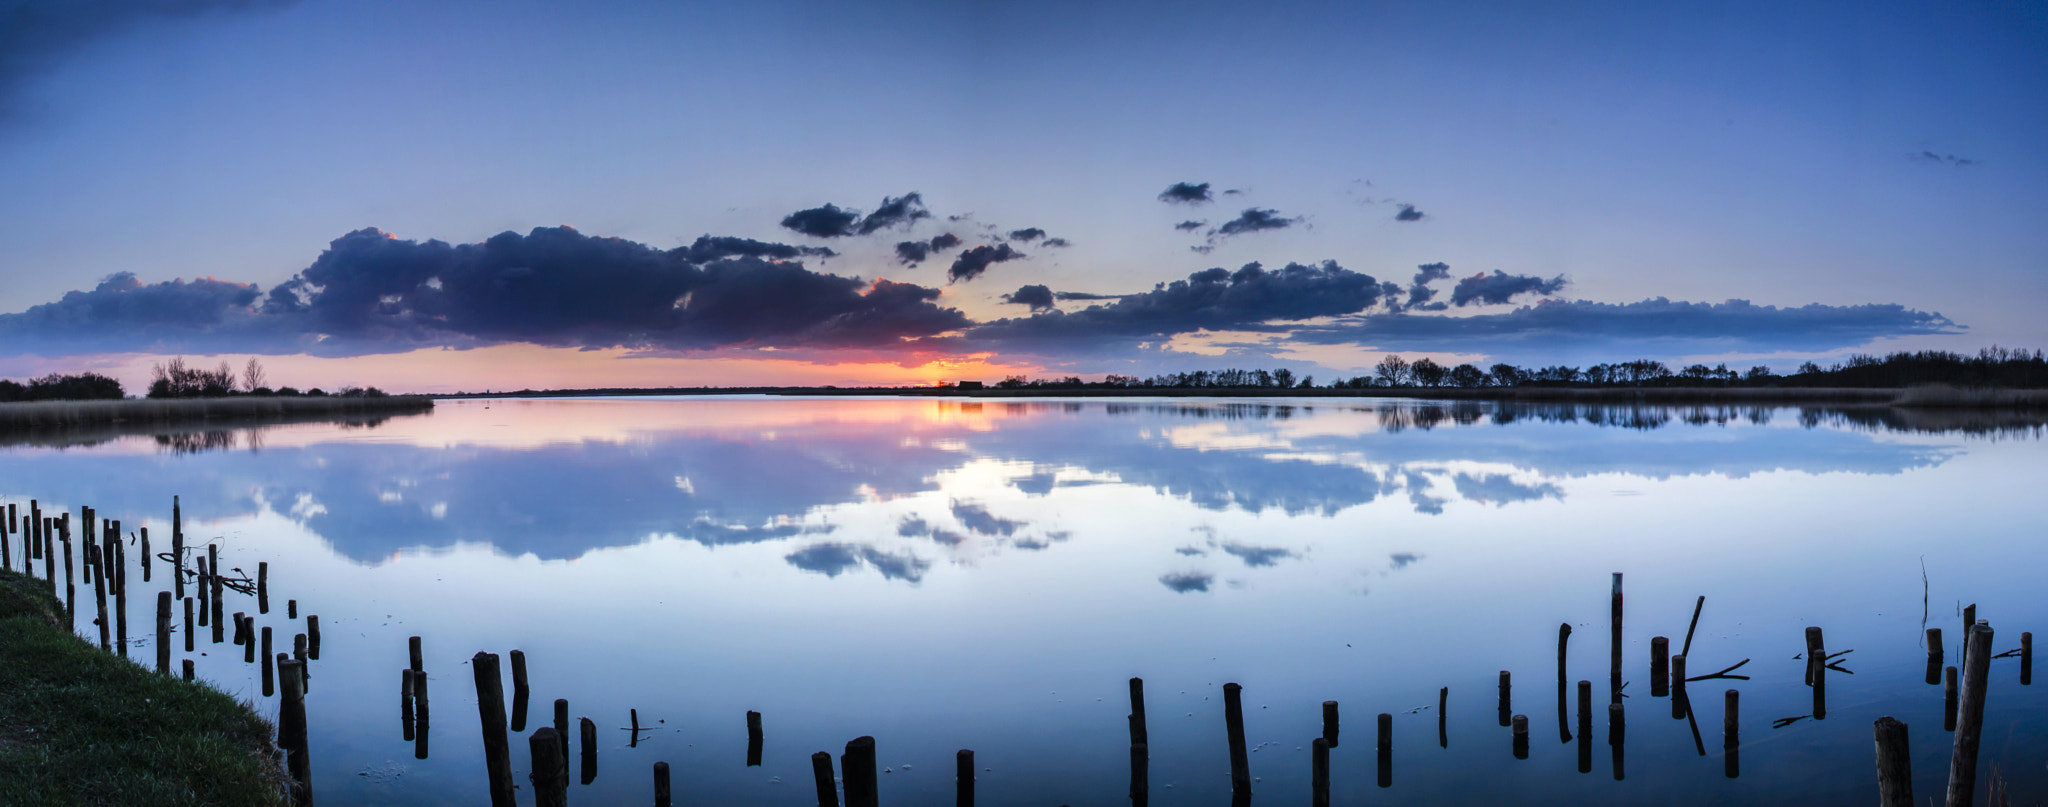 Photograph Sunset on the Mere by Gail Sparks on 500px